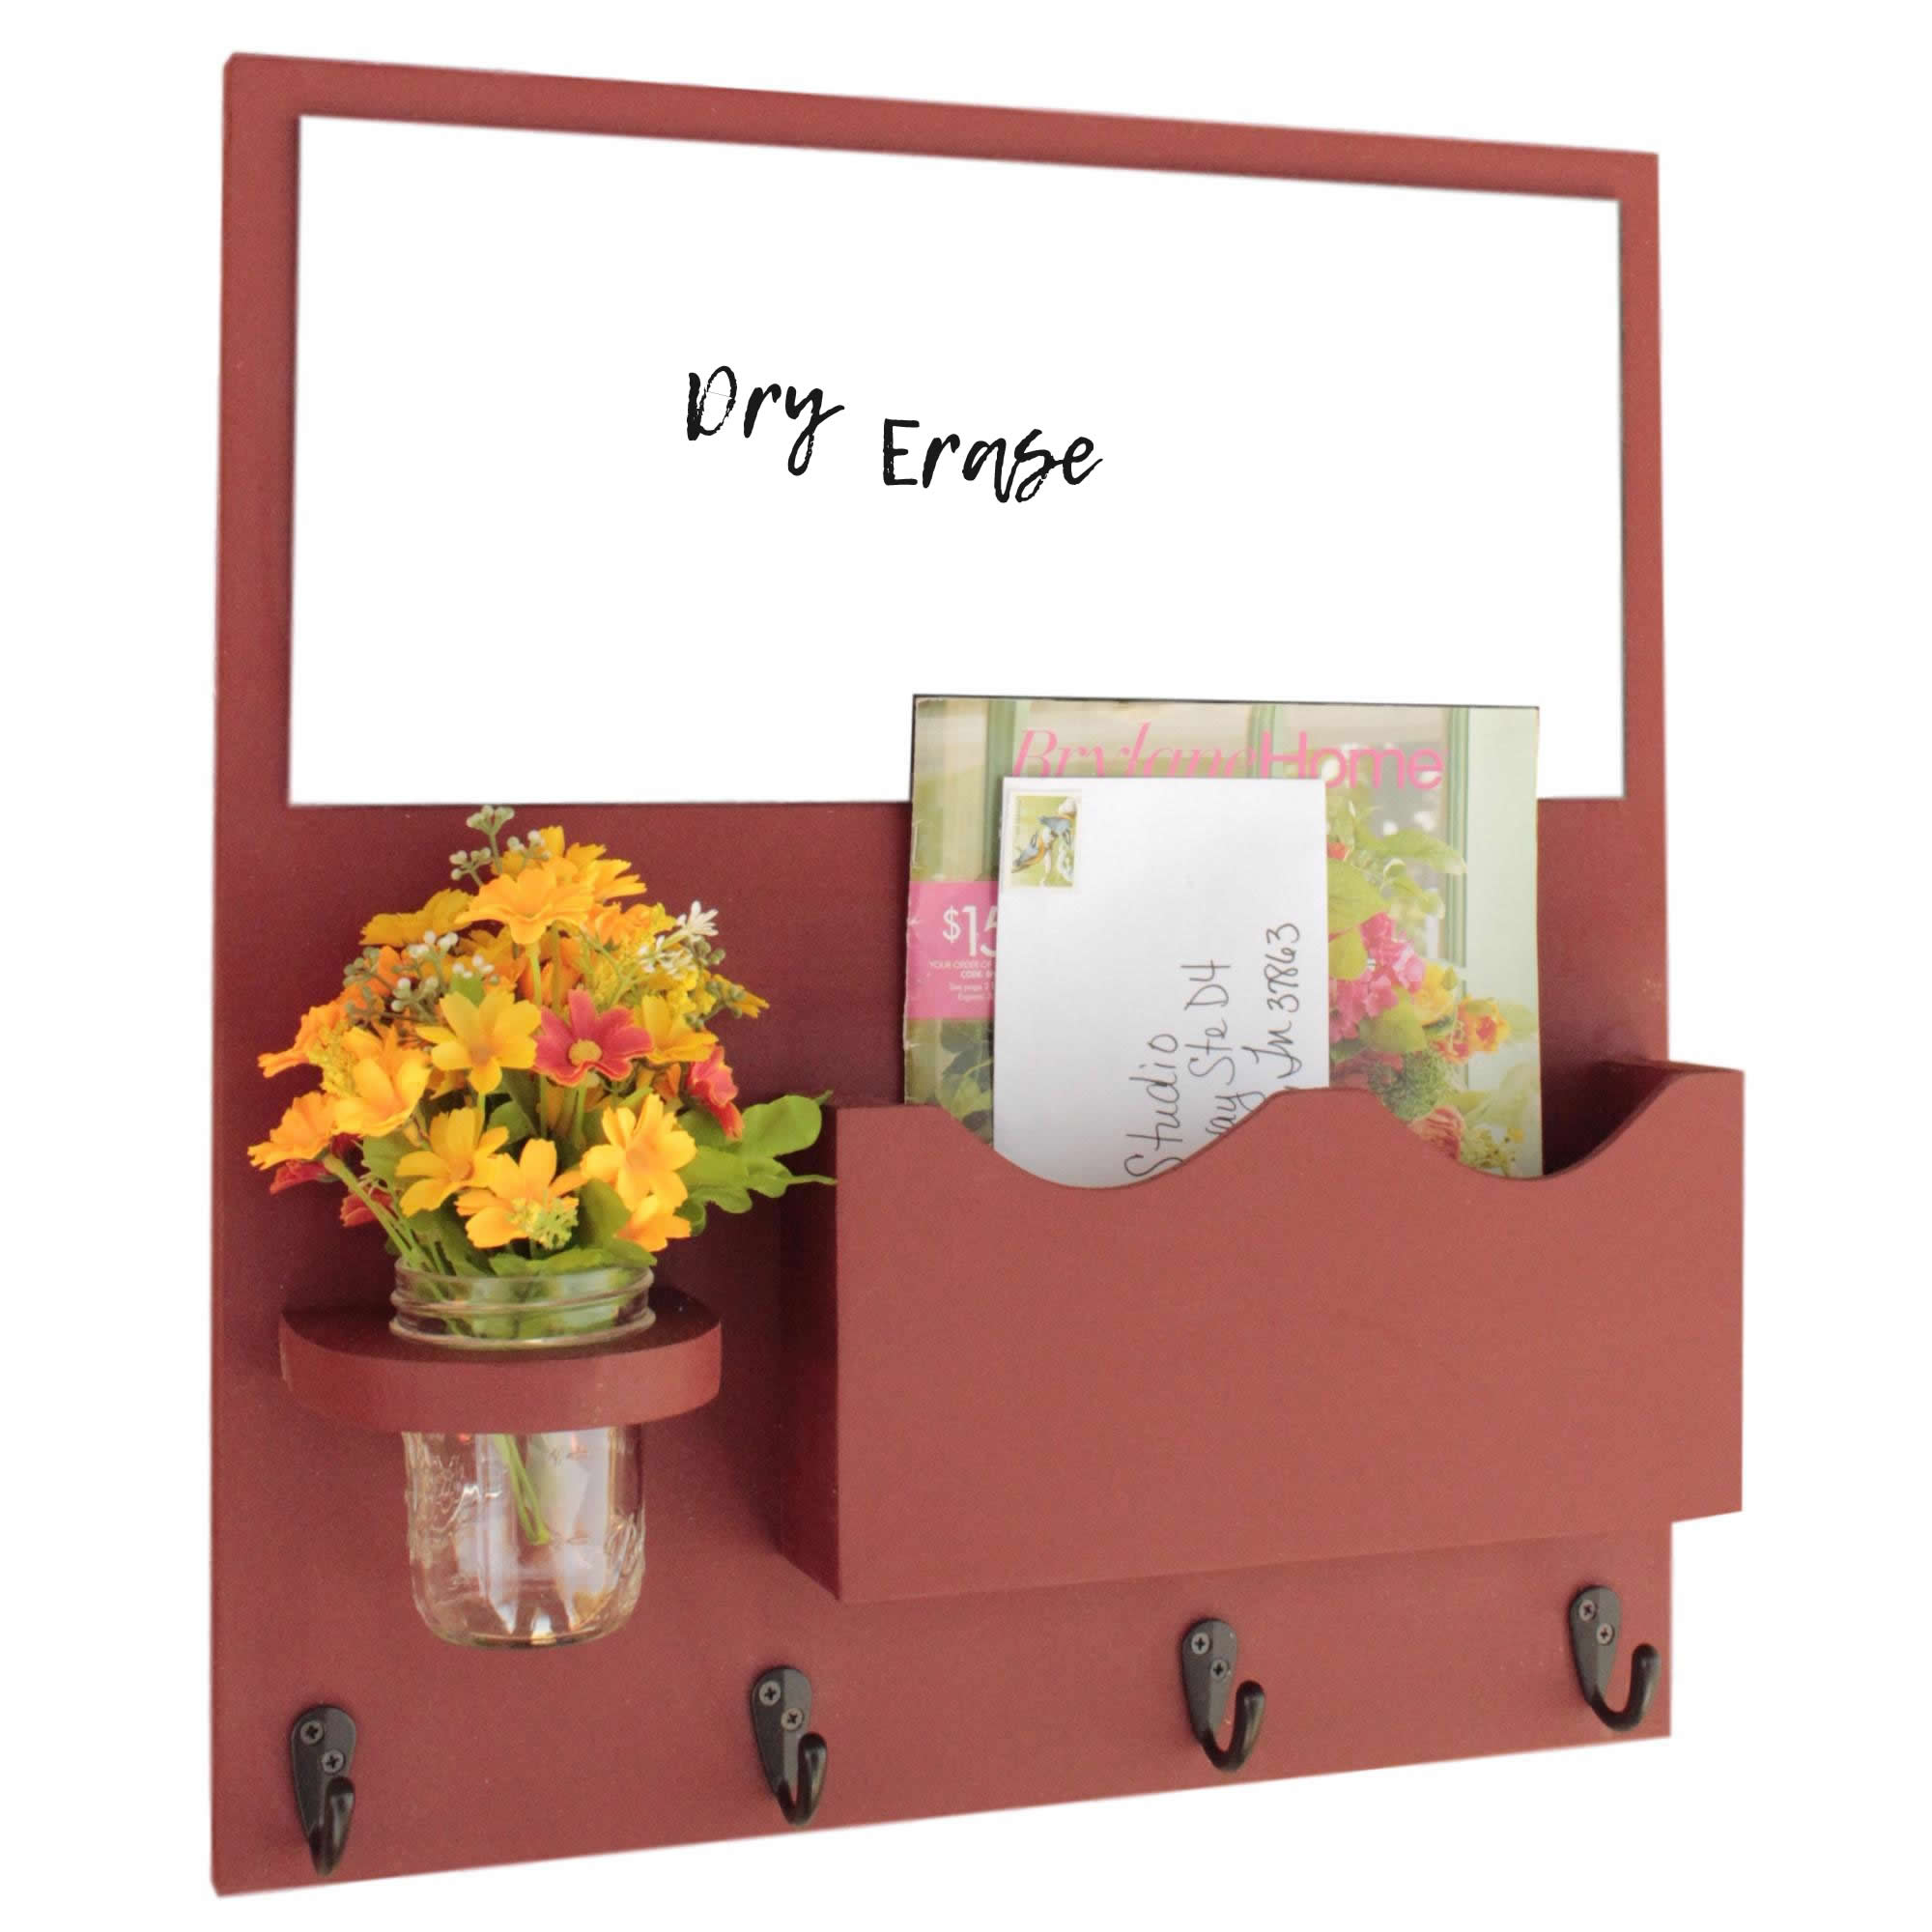 Mail Organizer with Whiteboard, One Large Magazine / Mail Slot, Key Hooks & Mason Jar